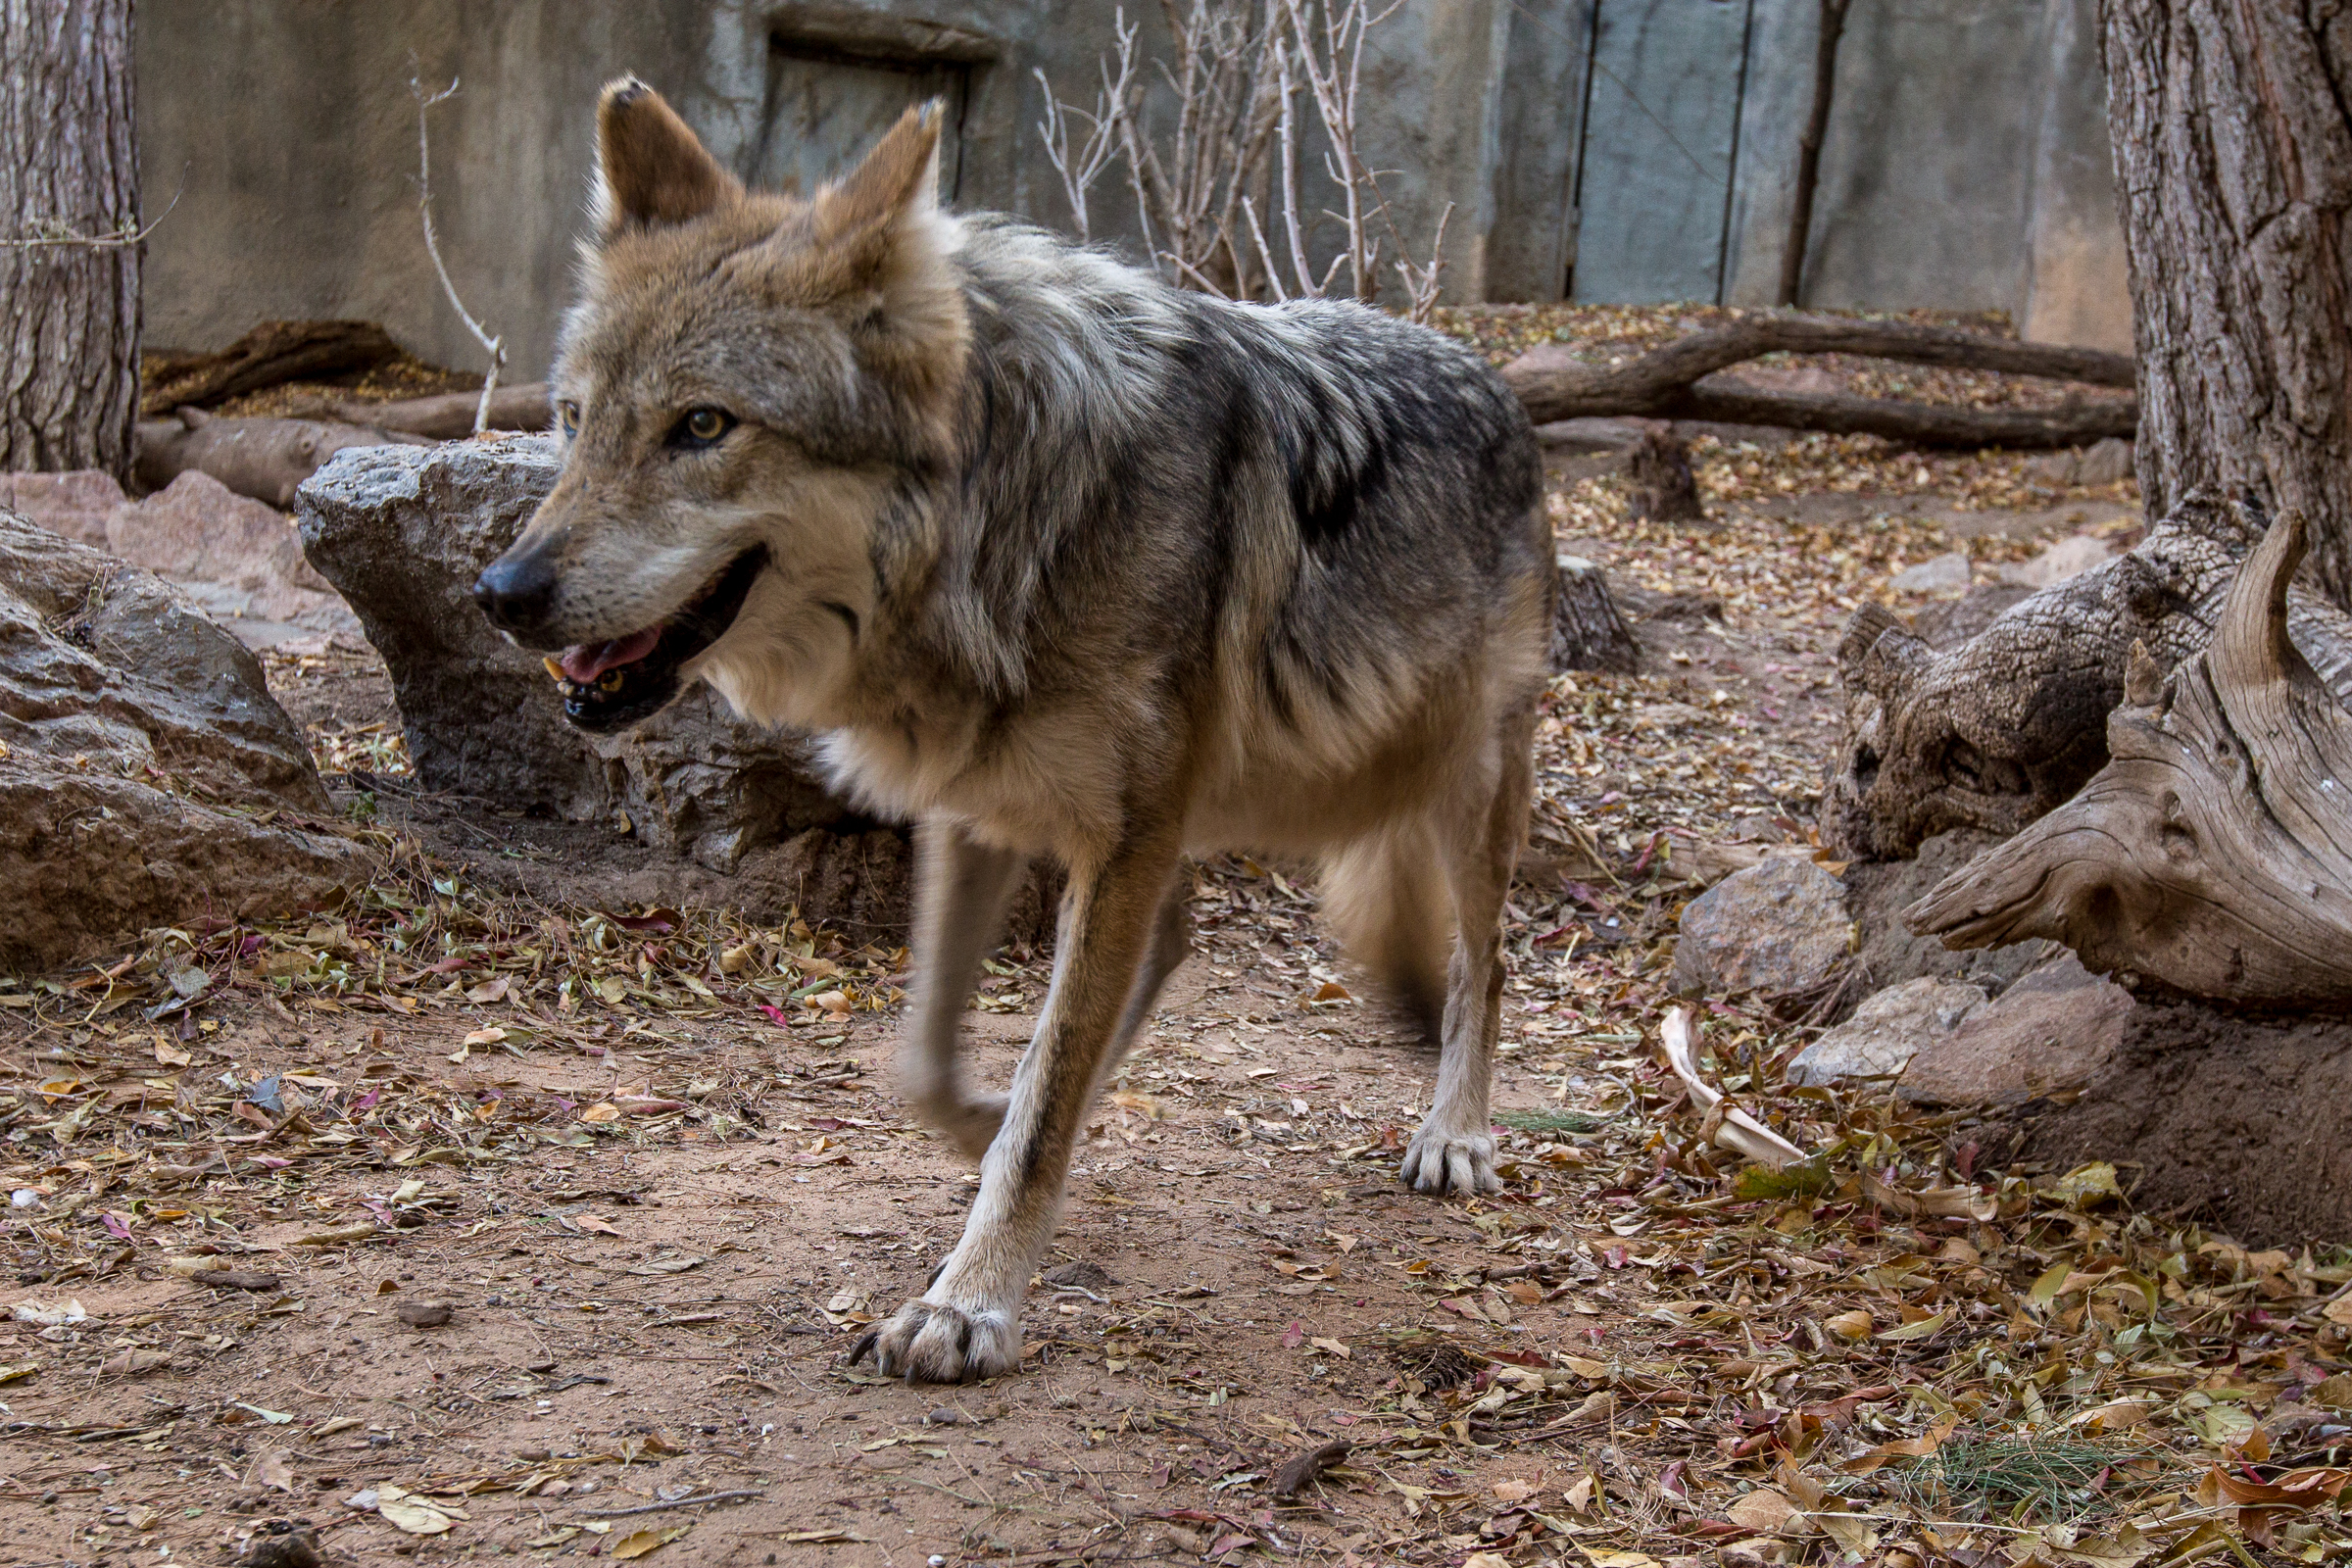 This Mexican wolf at the El Paso Zoo is part of a captive breeding program aimed at increasing the genetic diversity in Mexican wolf populations. Photograph by Christina Selby